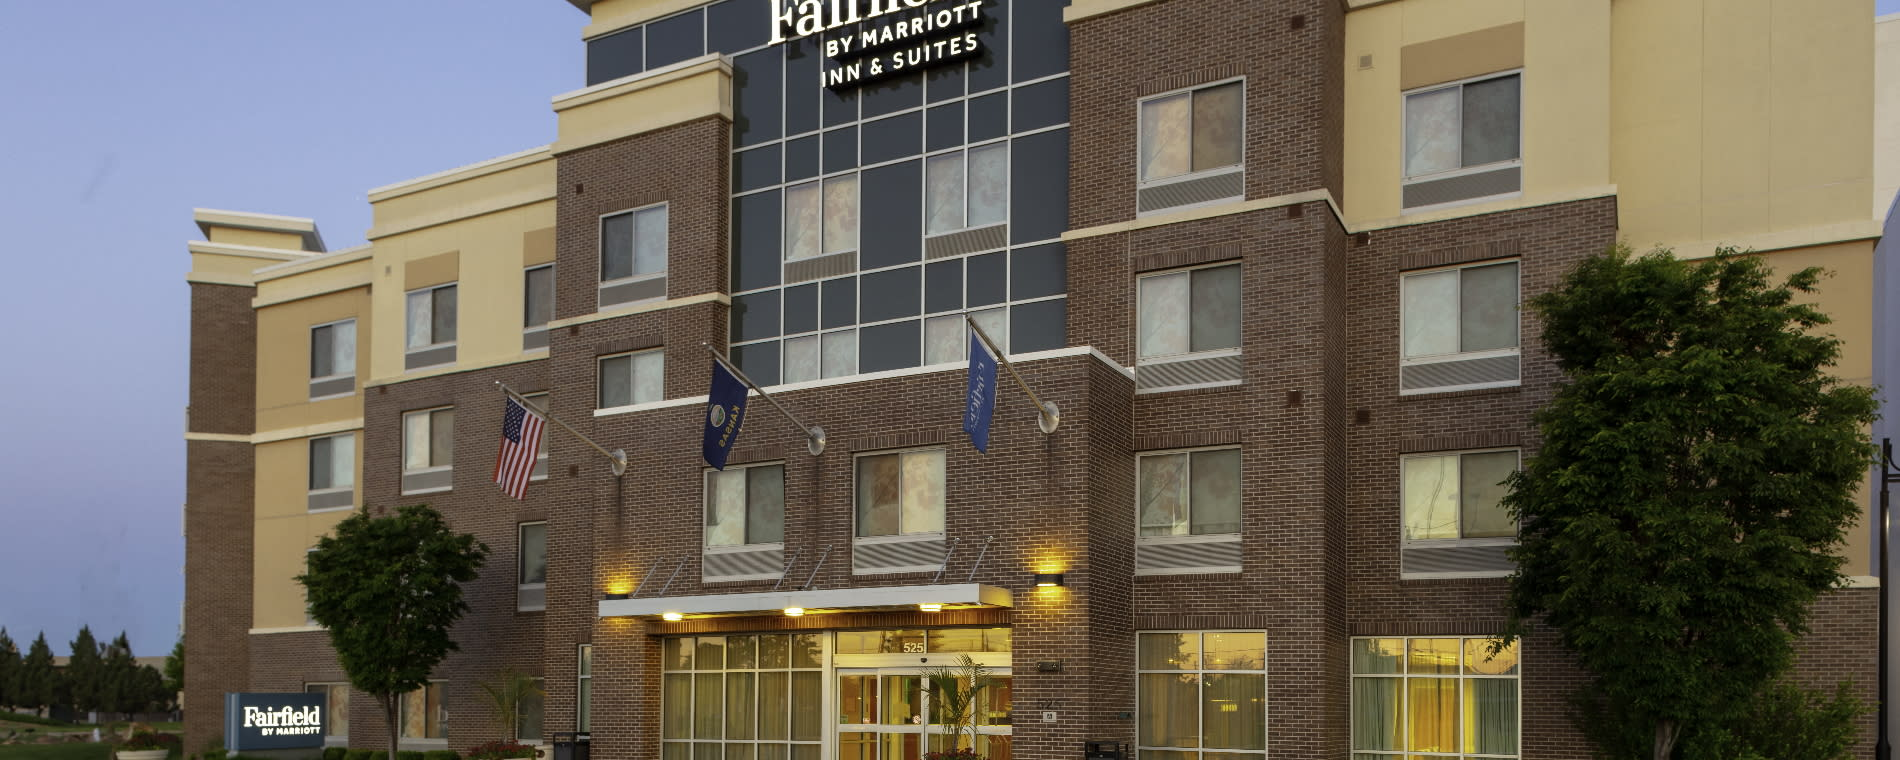 Fairfield Inn and Suites by Marriott Downtown